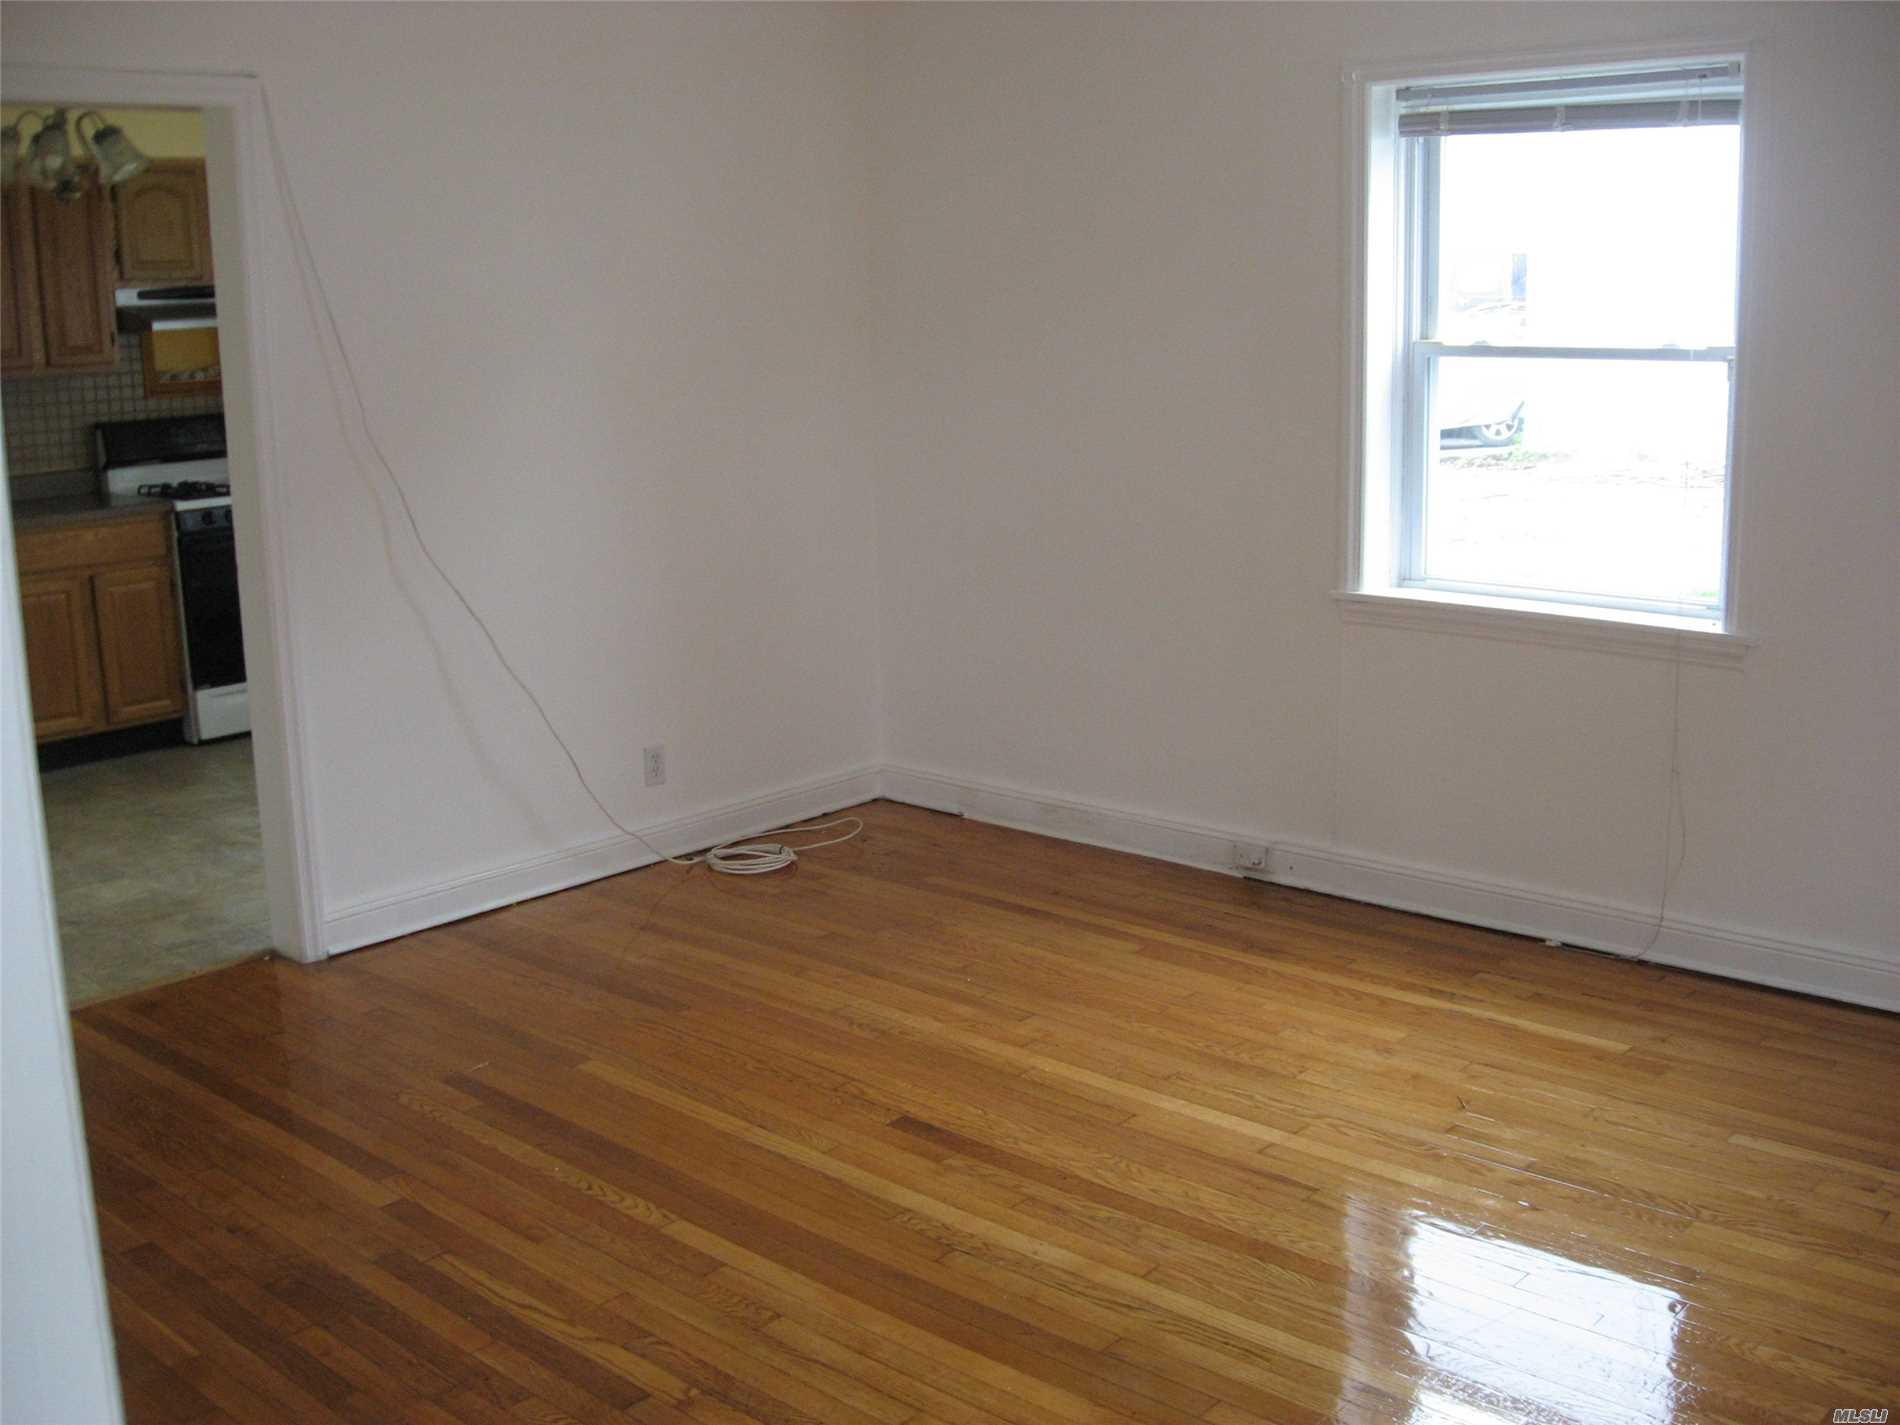 Refinished Hardwood Floors- Freshly Painted With Small Yard - Near All Transportation , Stores And Hoftra University